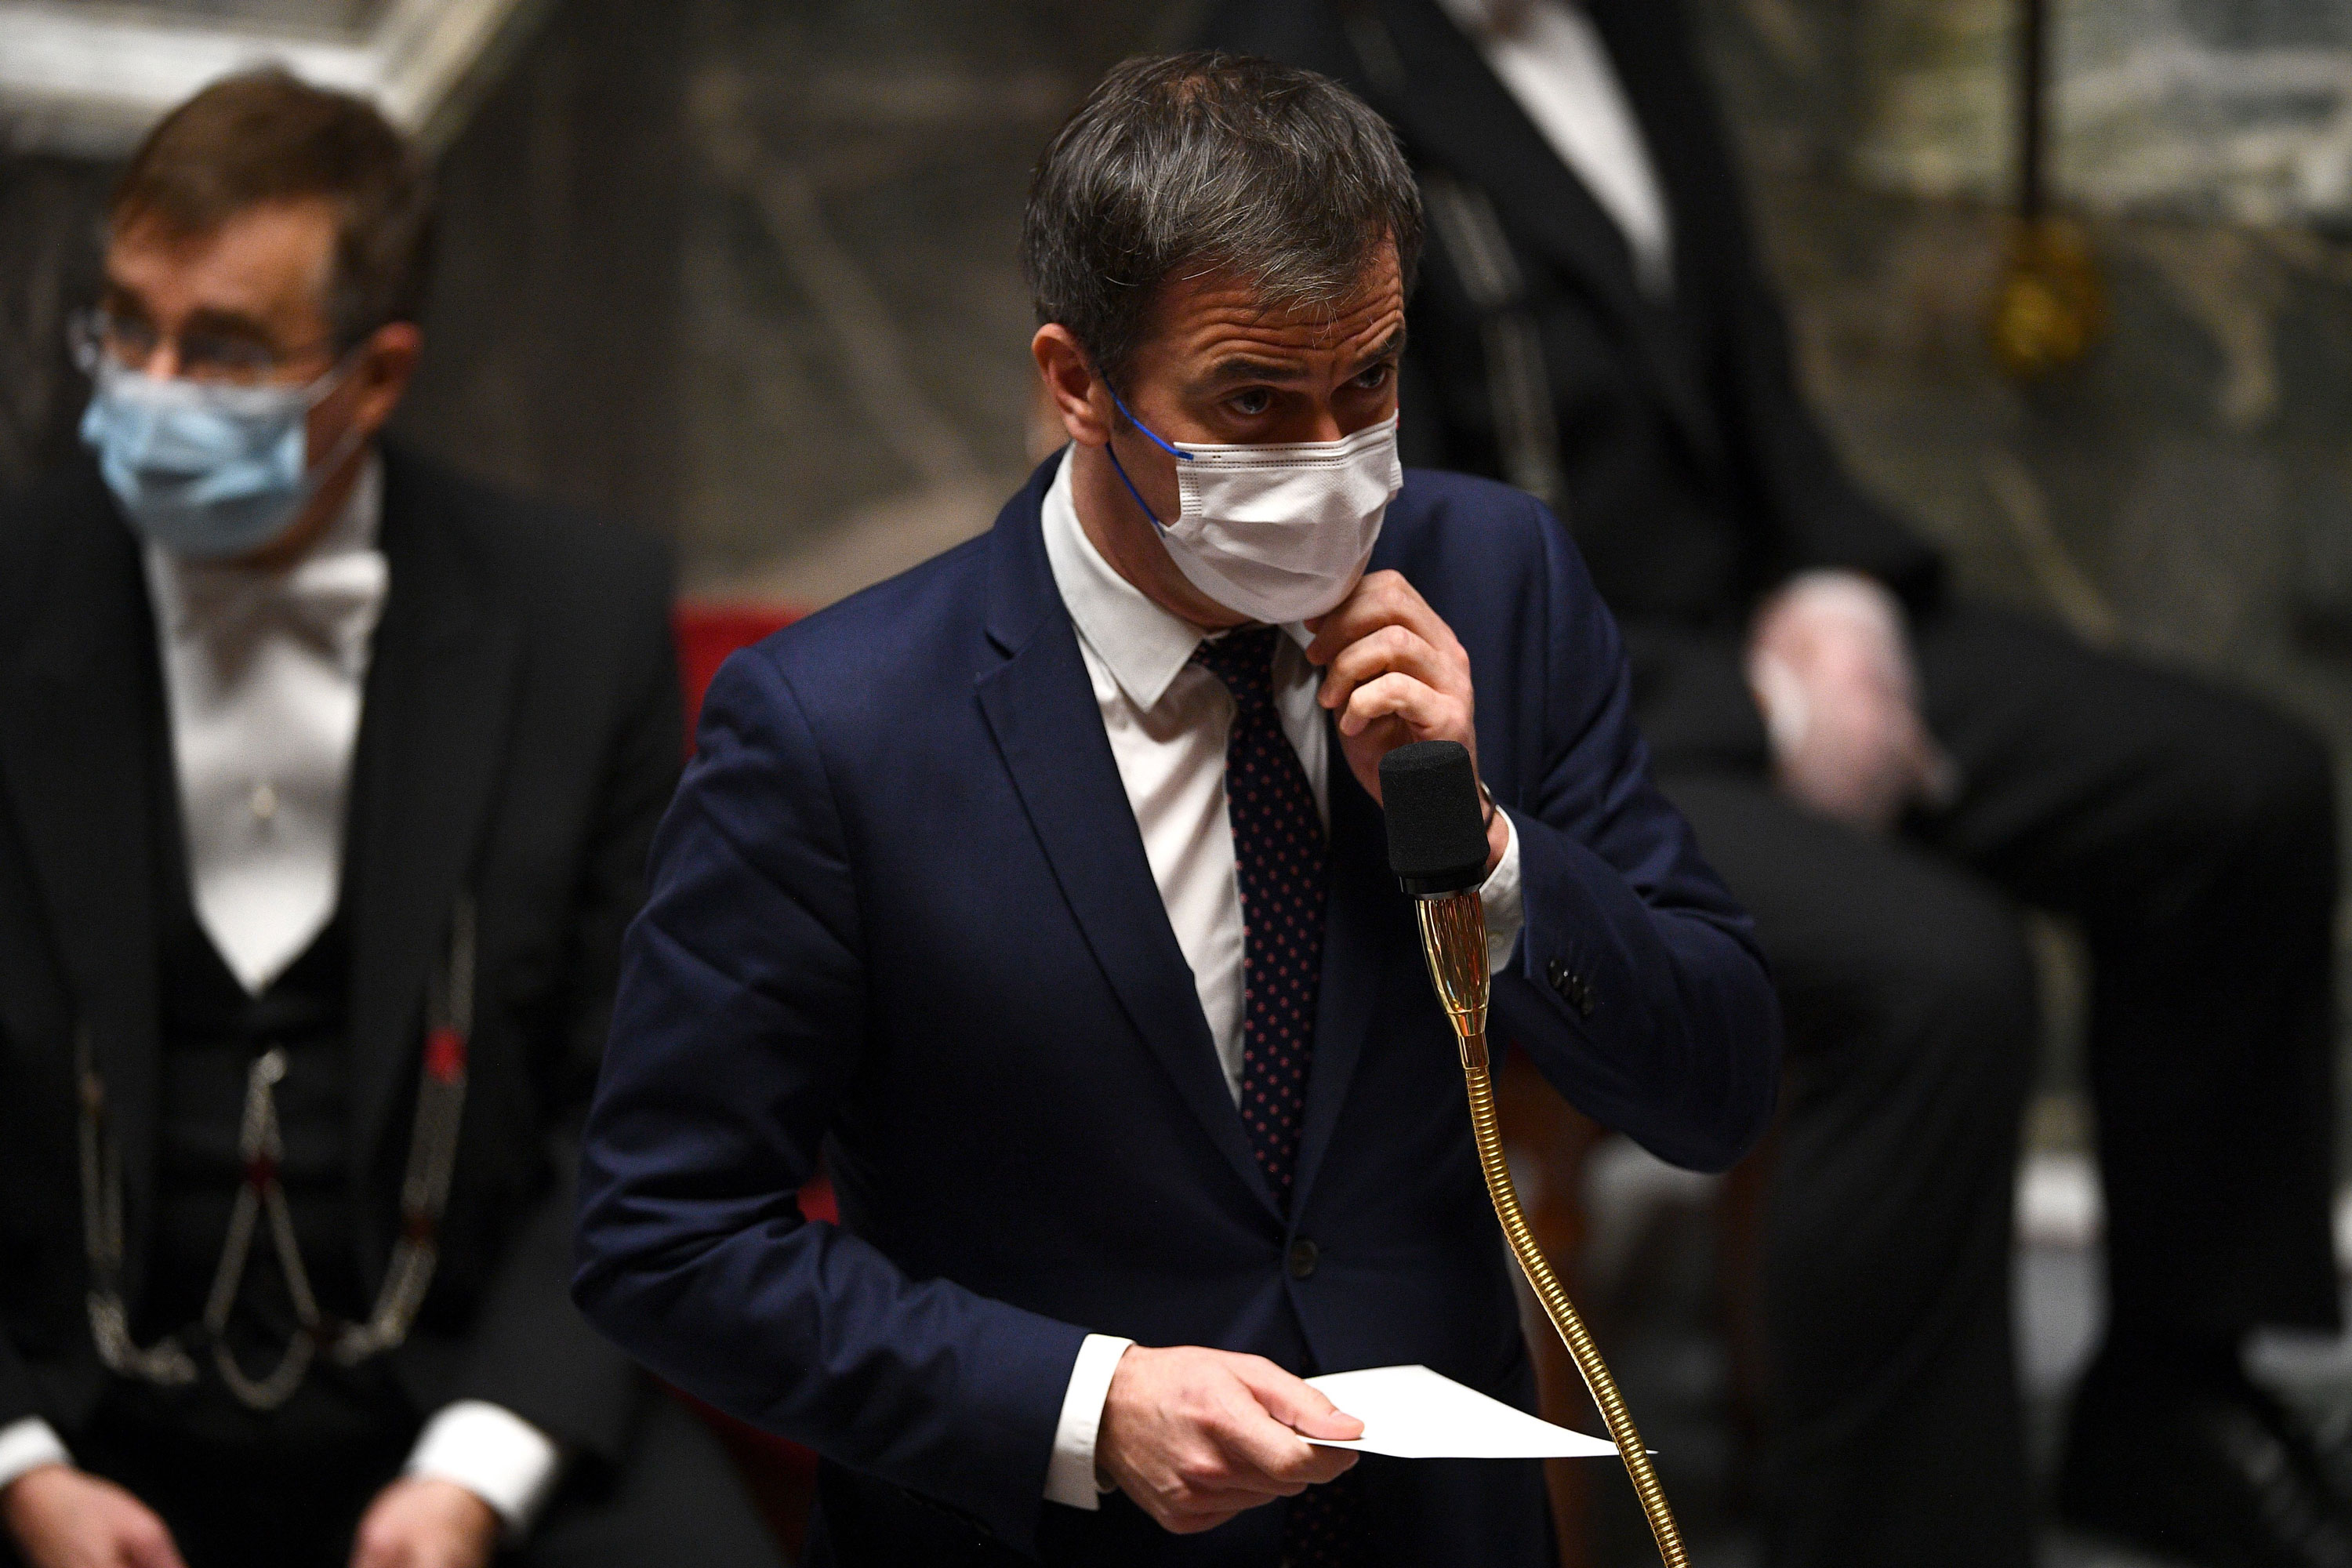 French Health Minister Olivier Veran speaks during a session of questions to the government at the National Assembly in Paris on January 12.